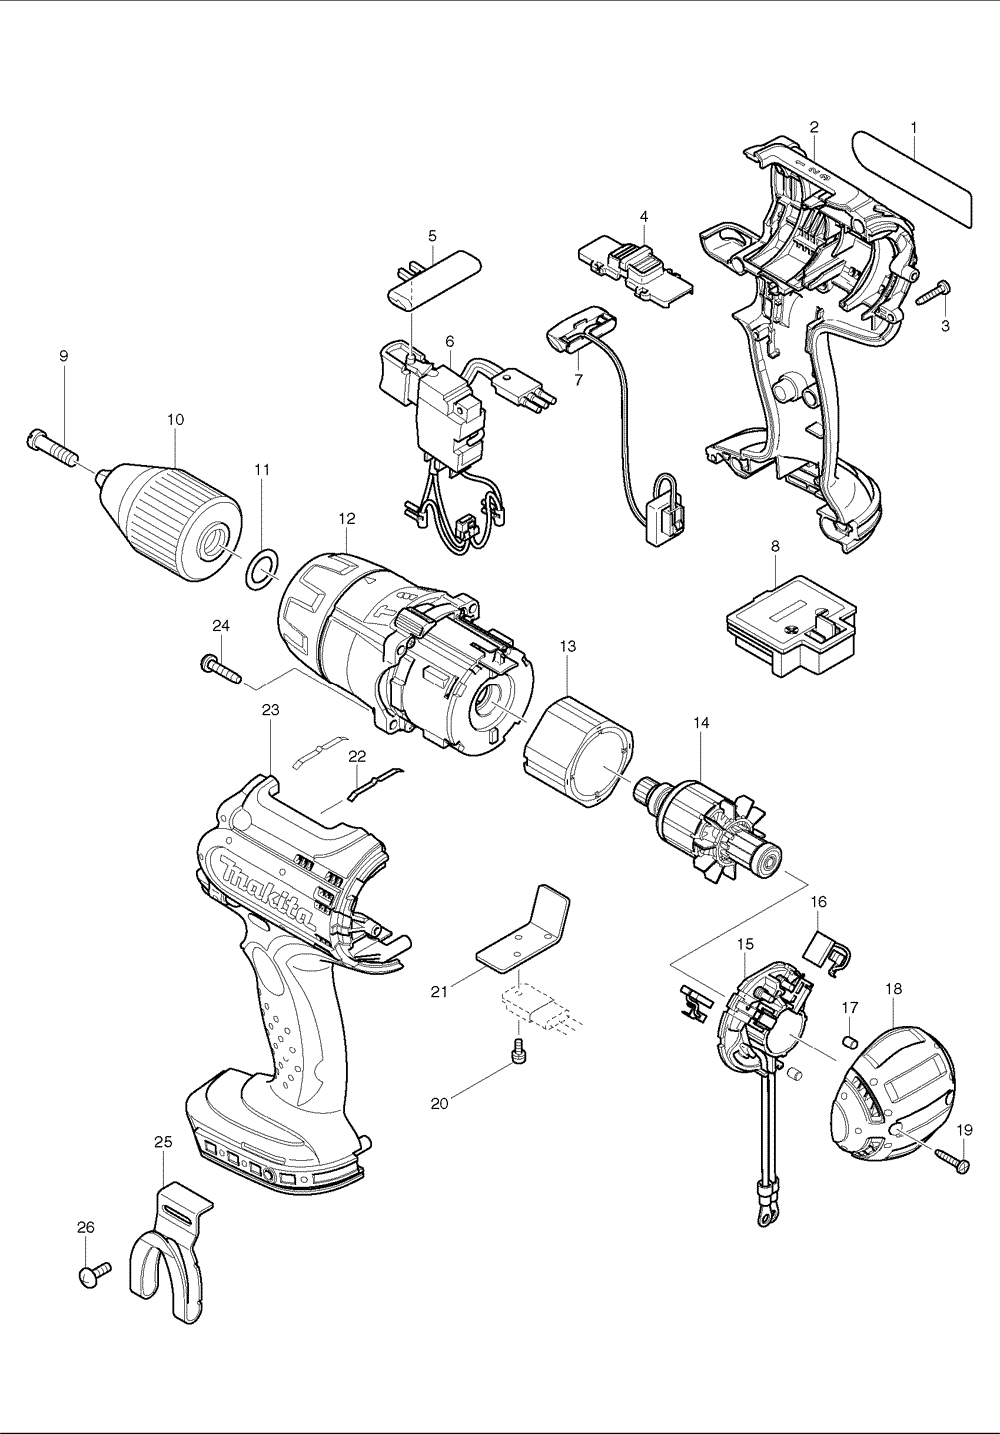 electric drill schematic diagram